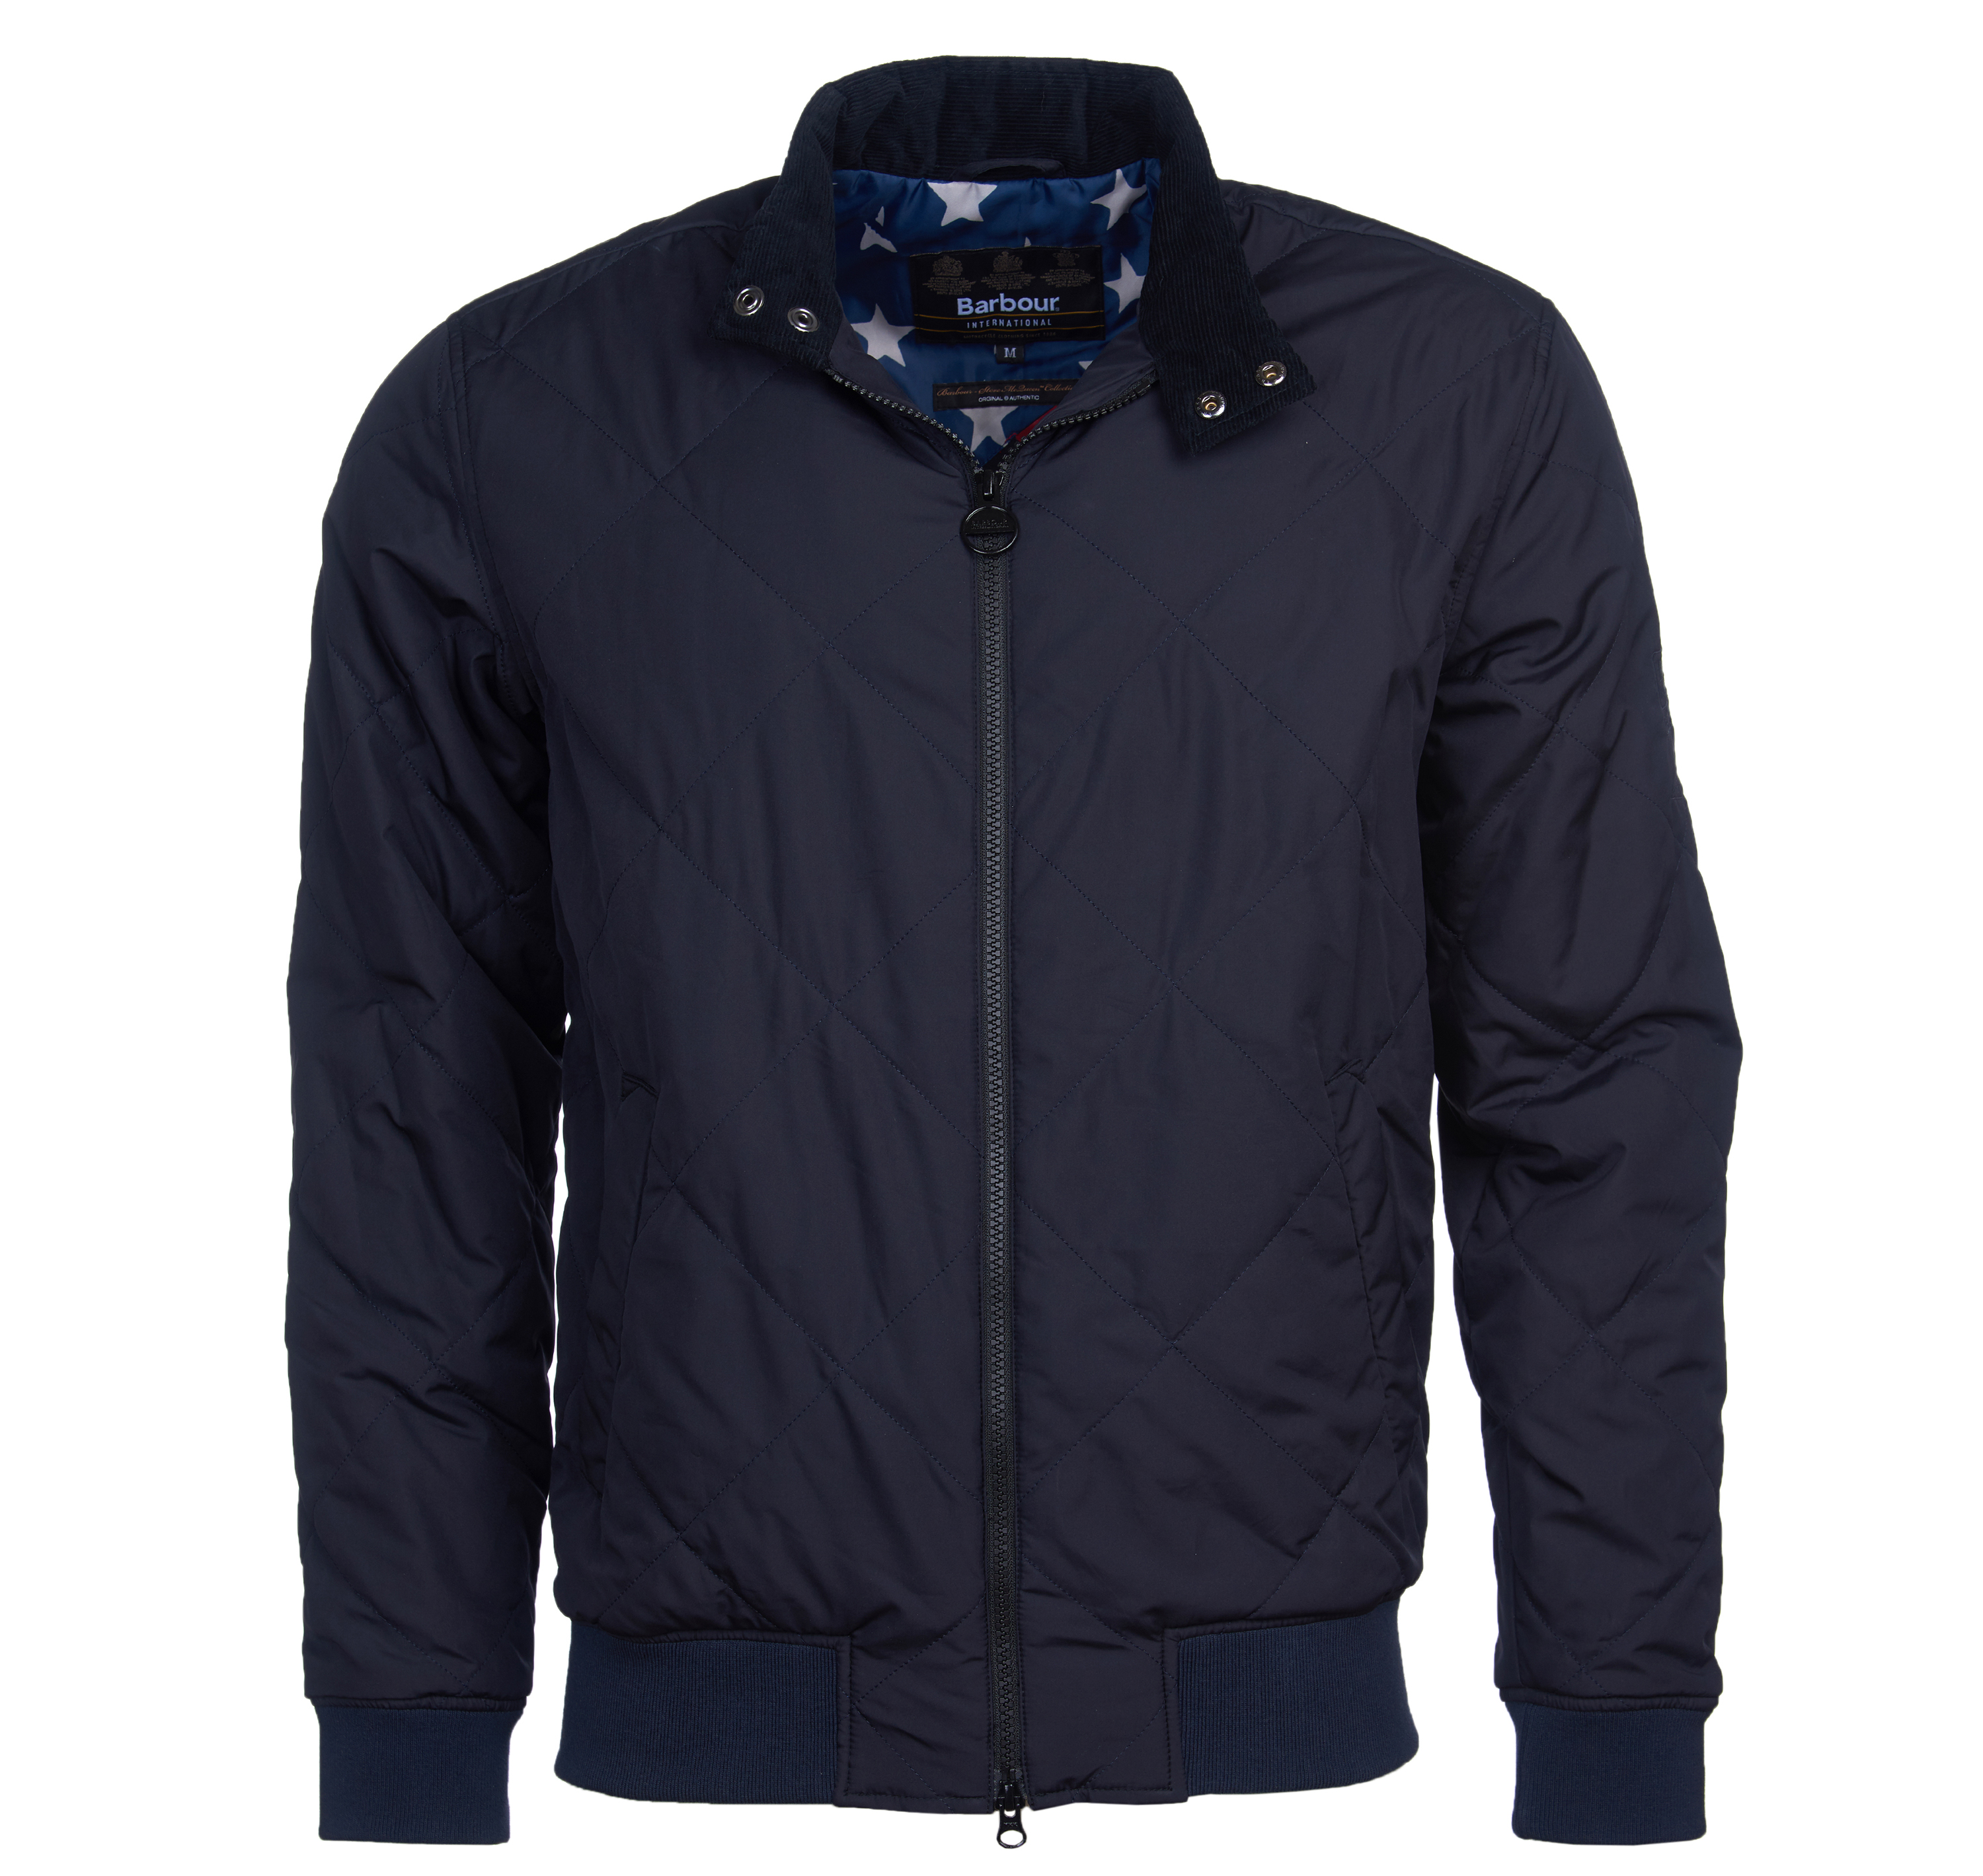 B. Intl. Steve McQueen Glance Quilted Navy Barbour International: from the Steve McQueen capsule